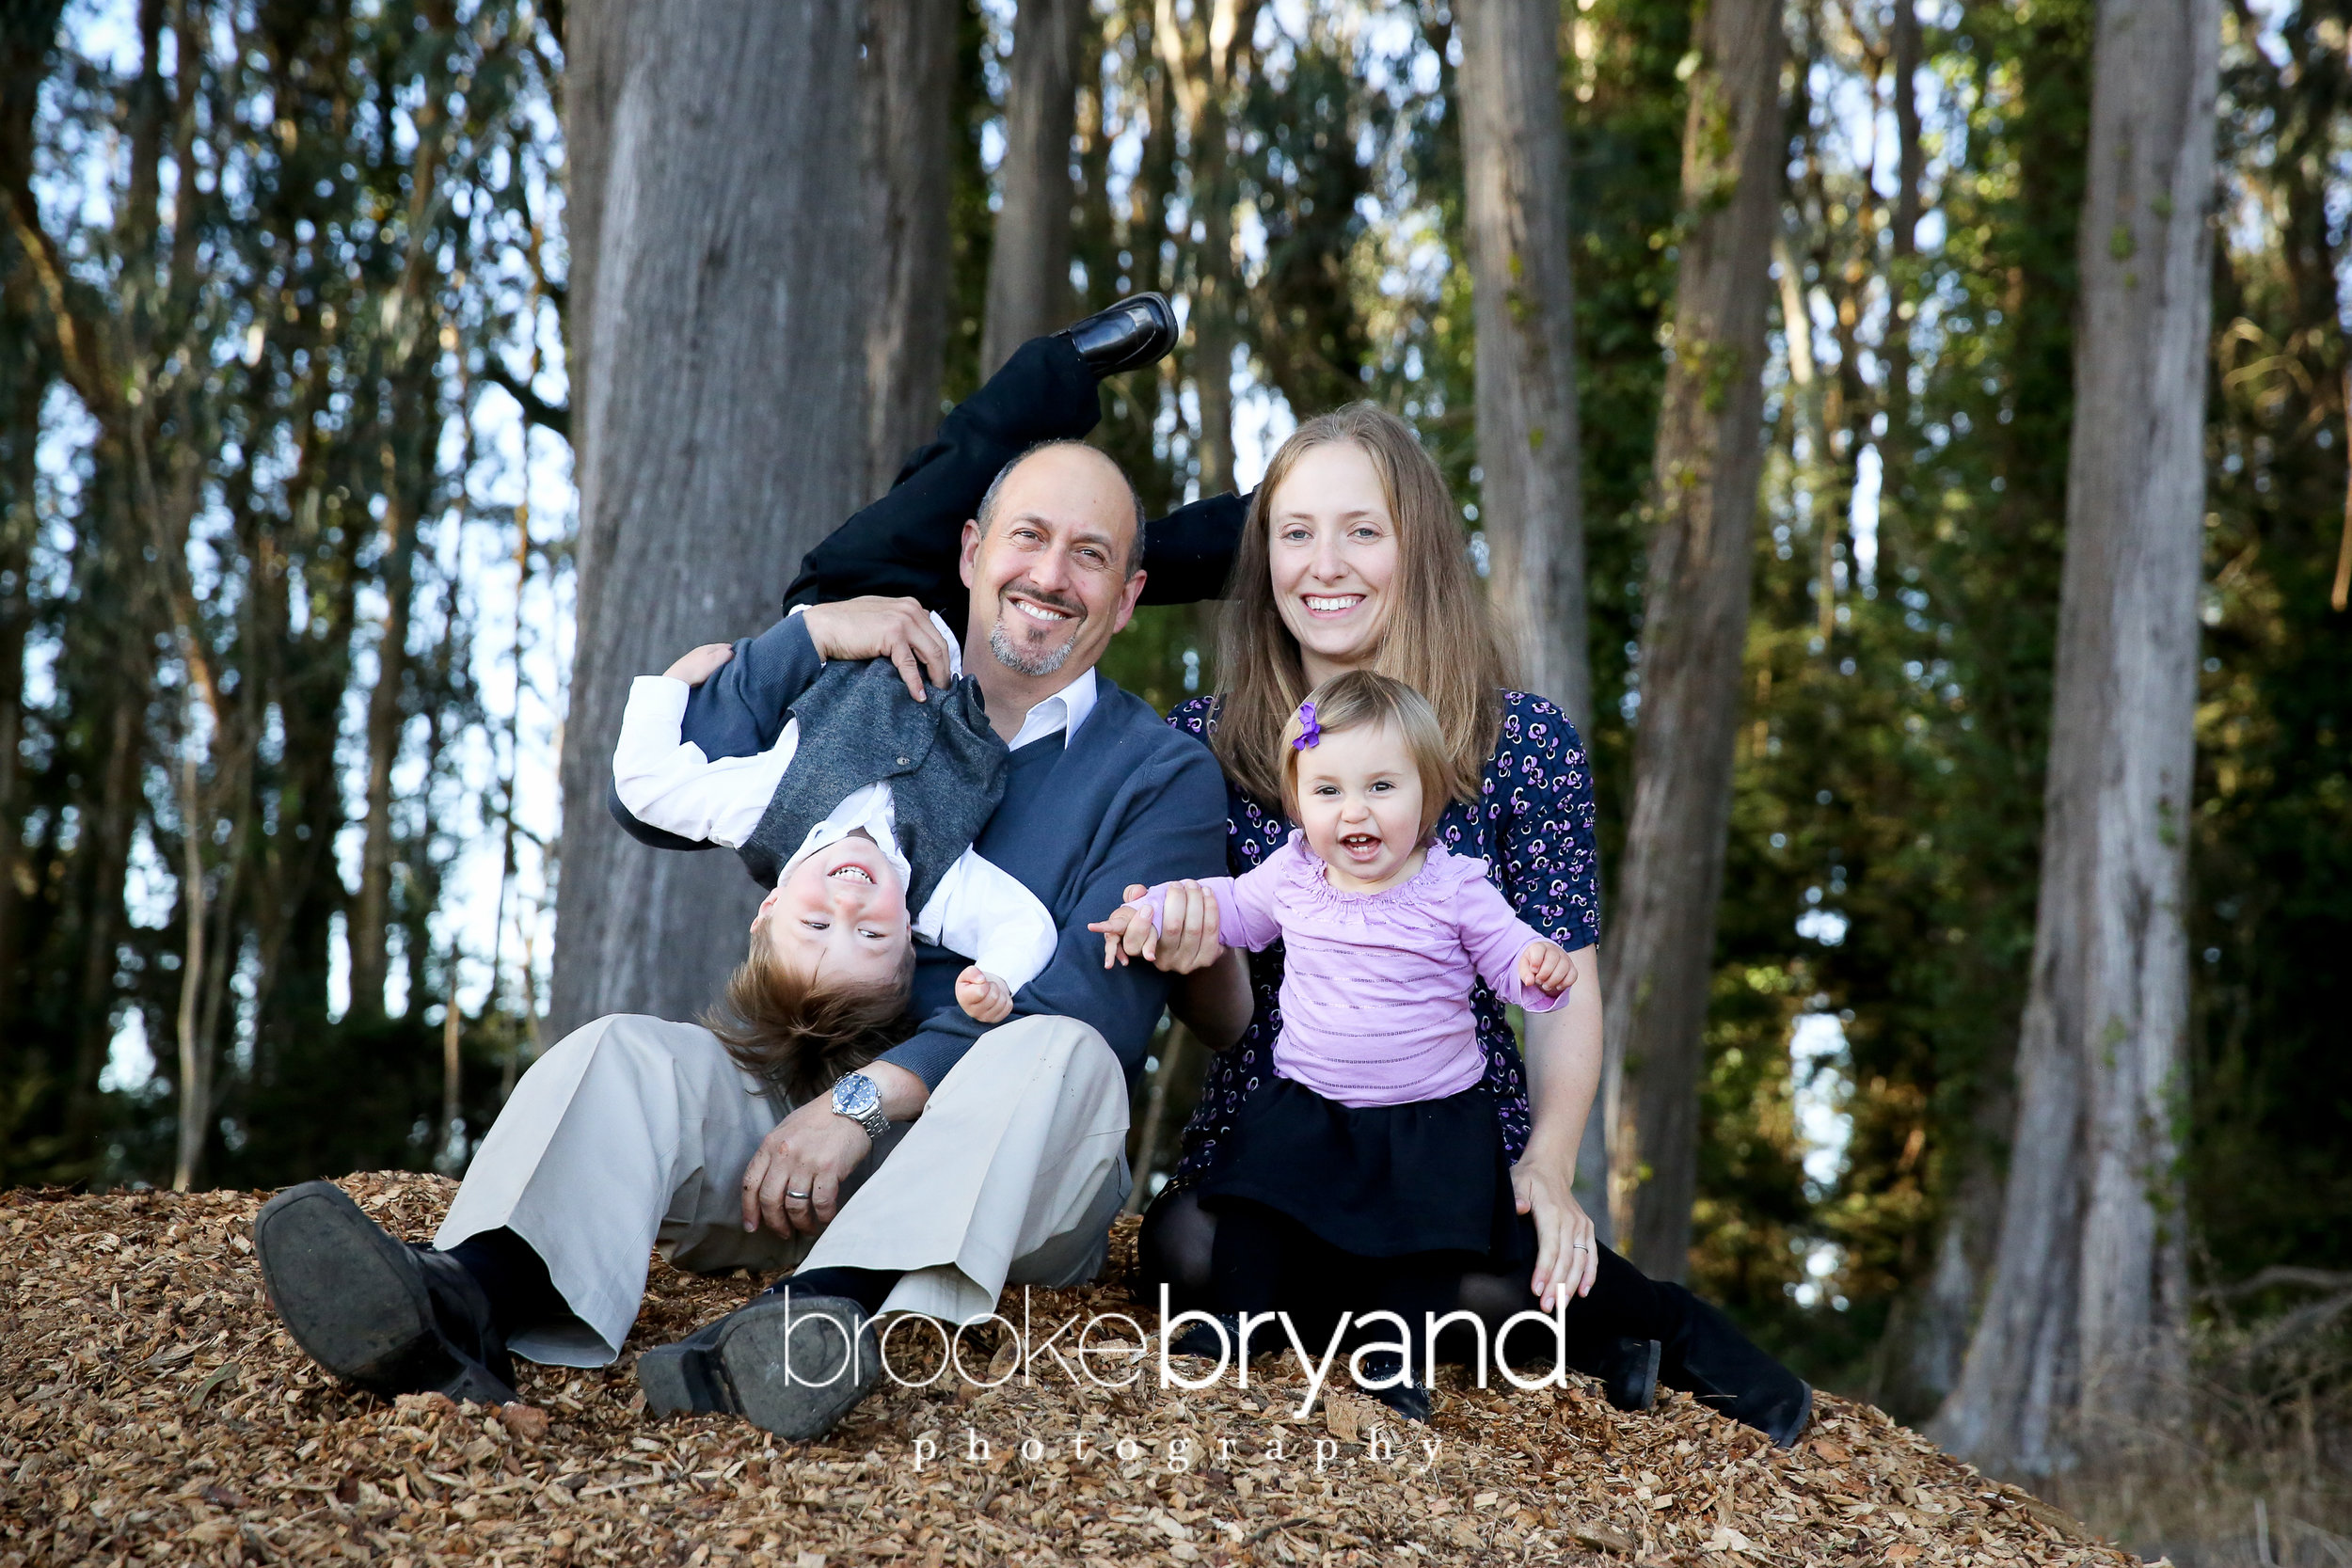 2up-brooke-bryand-photography-san-francisco-family-photographer-presidio-family-photo-locations-BBP_1964.jpg